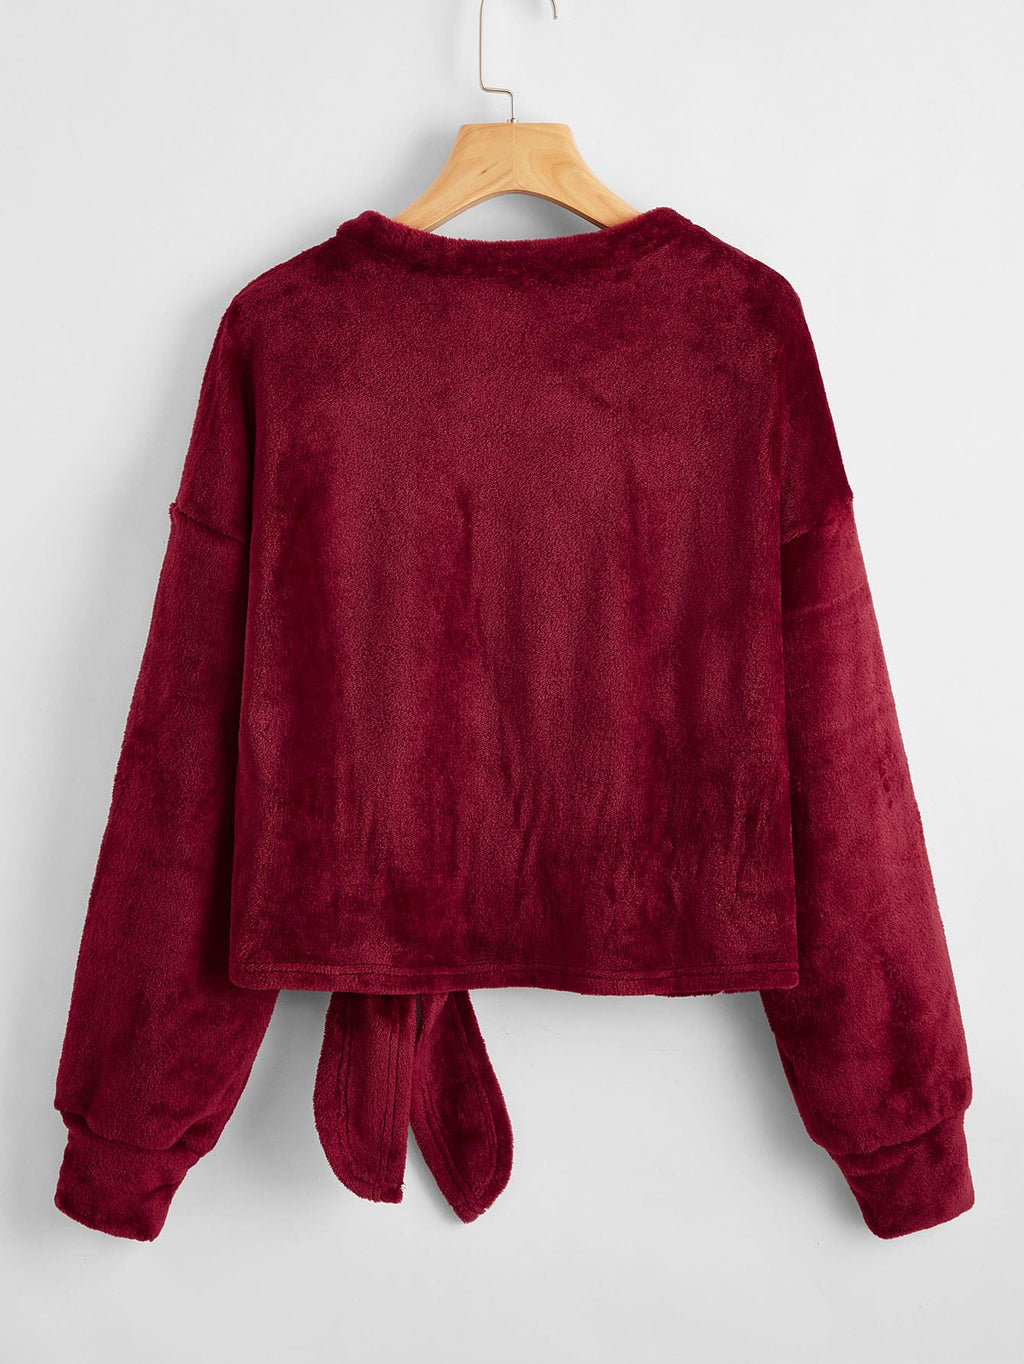 Drop Shoulder Knot Front Fluffy Knit Burgundy Sweater FD